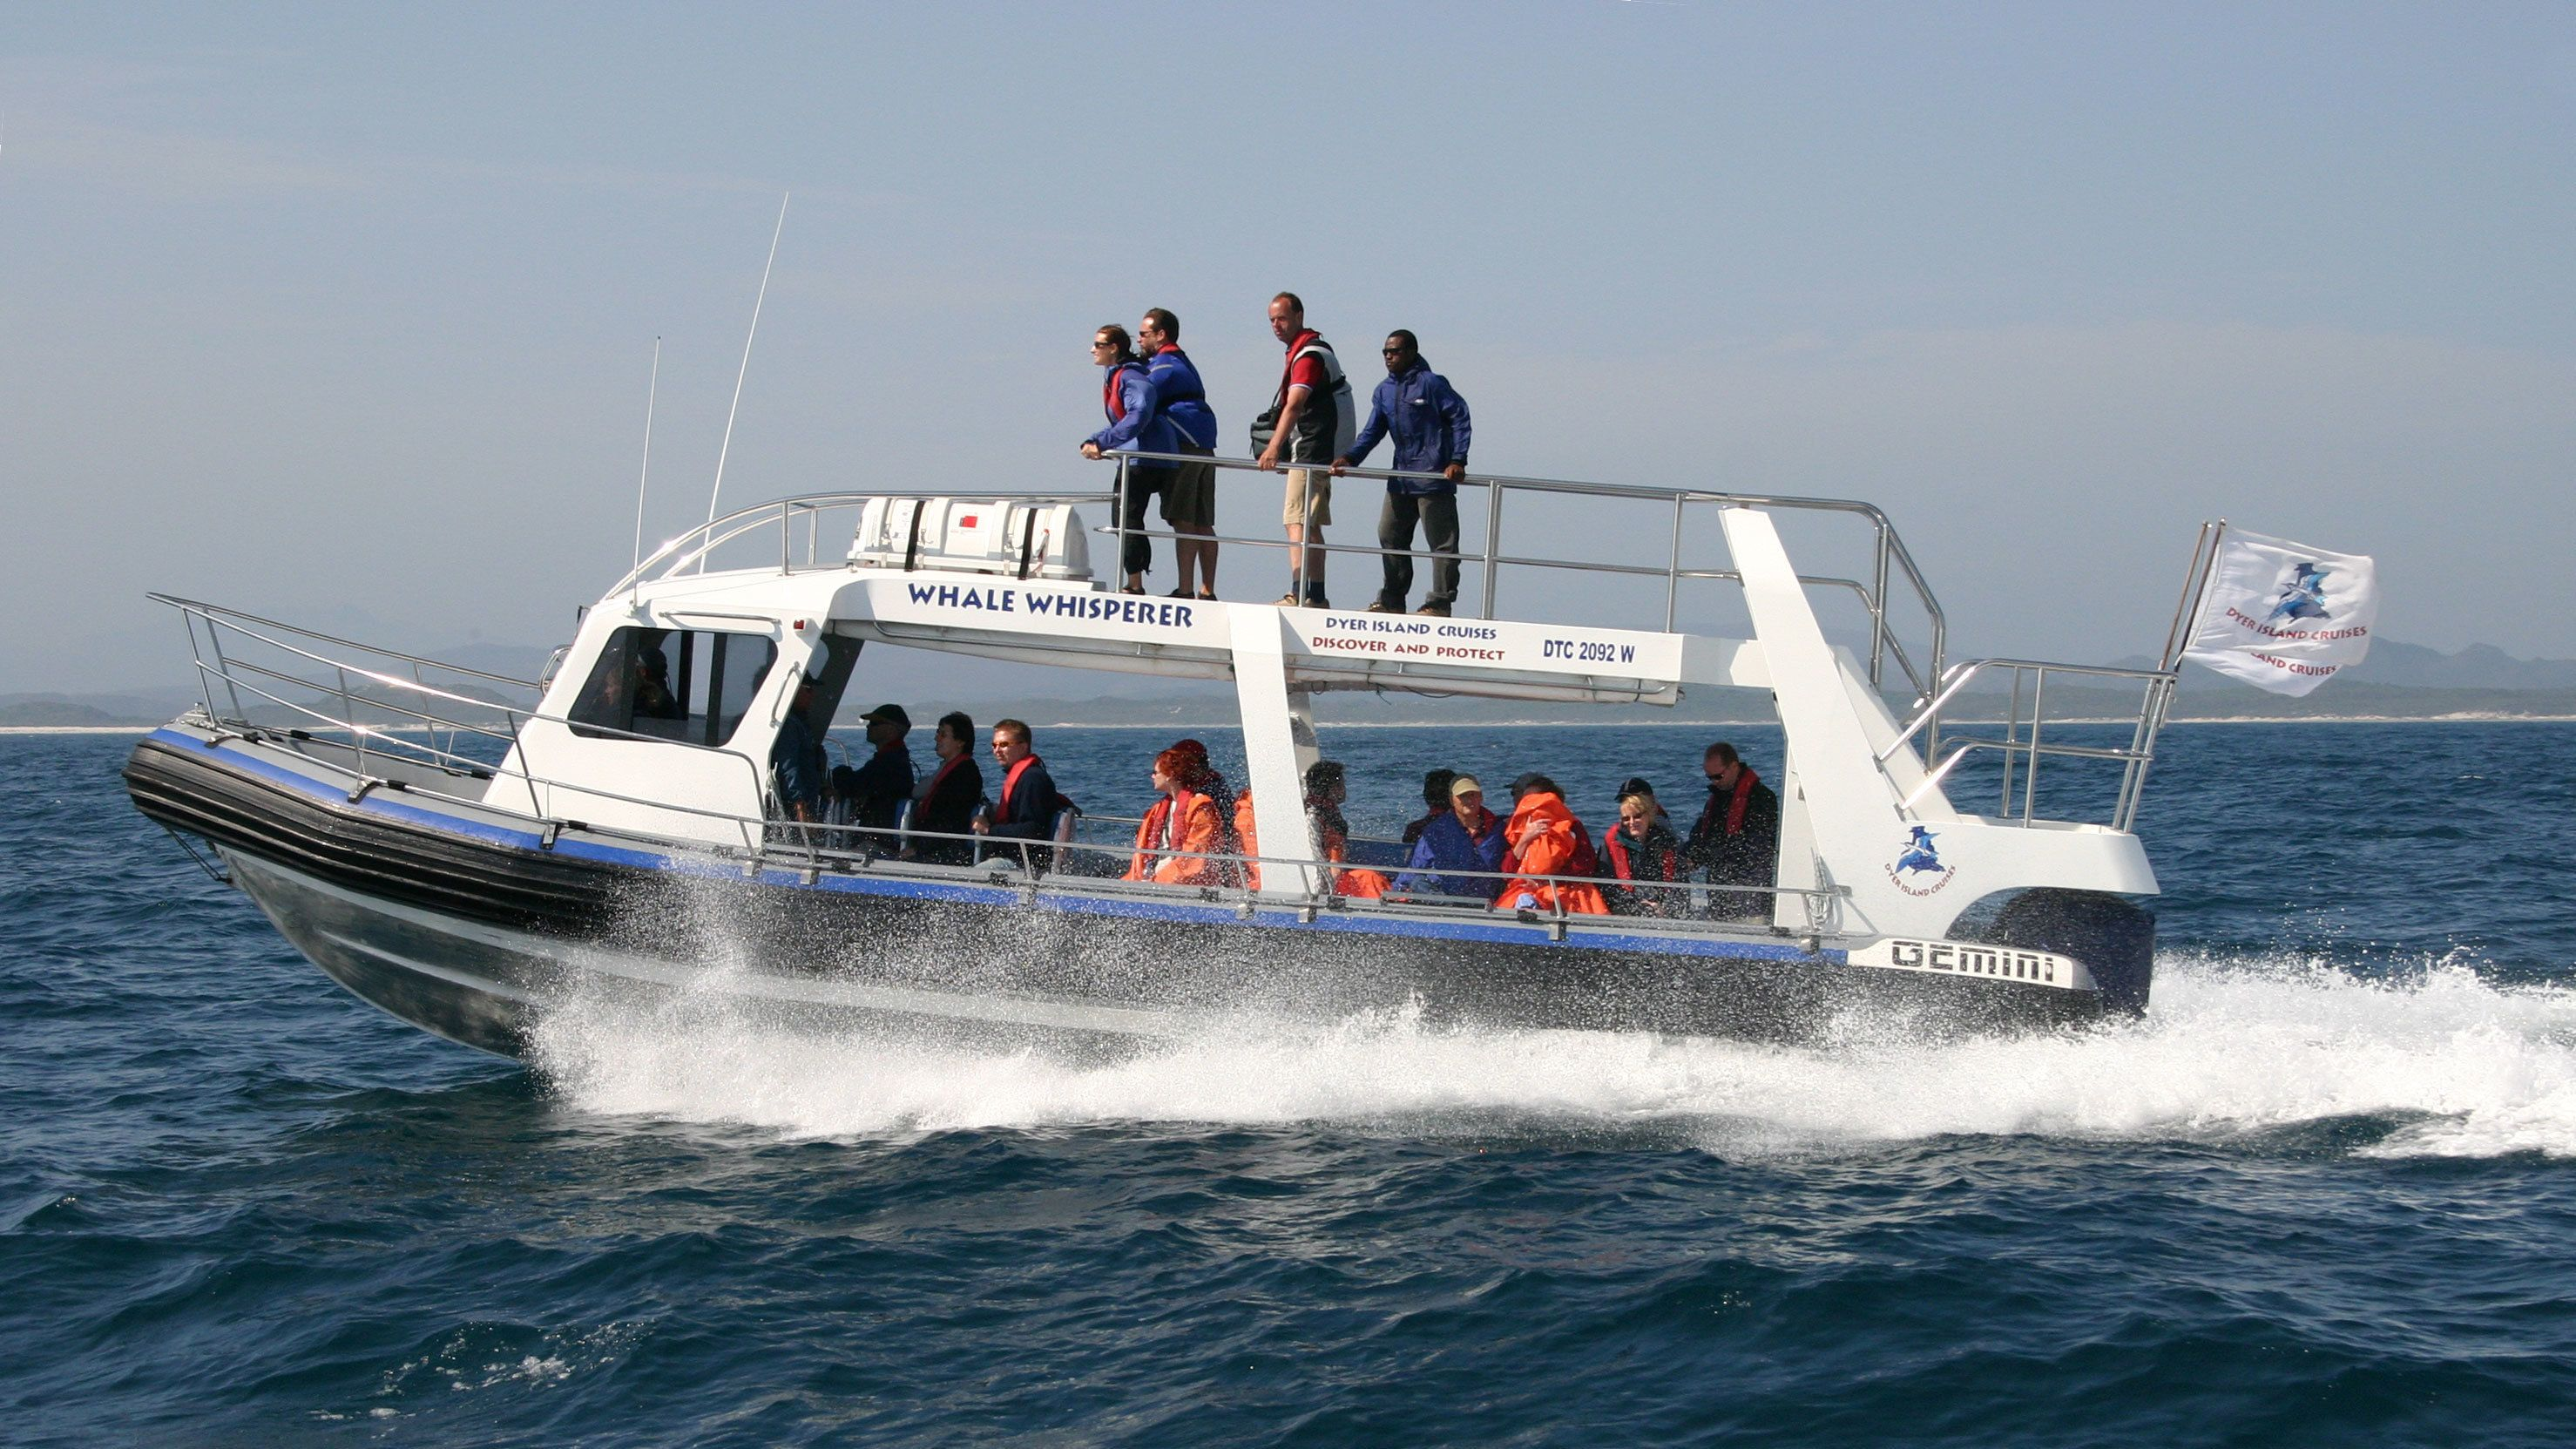 Whale watching boat speeding in the ocean in South Africa